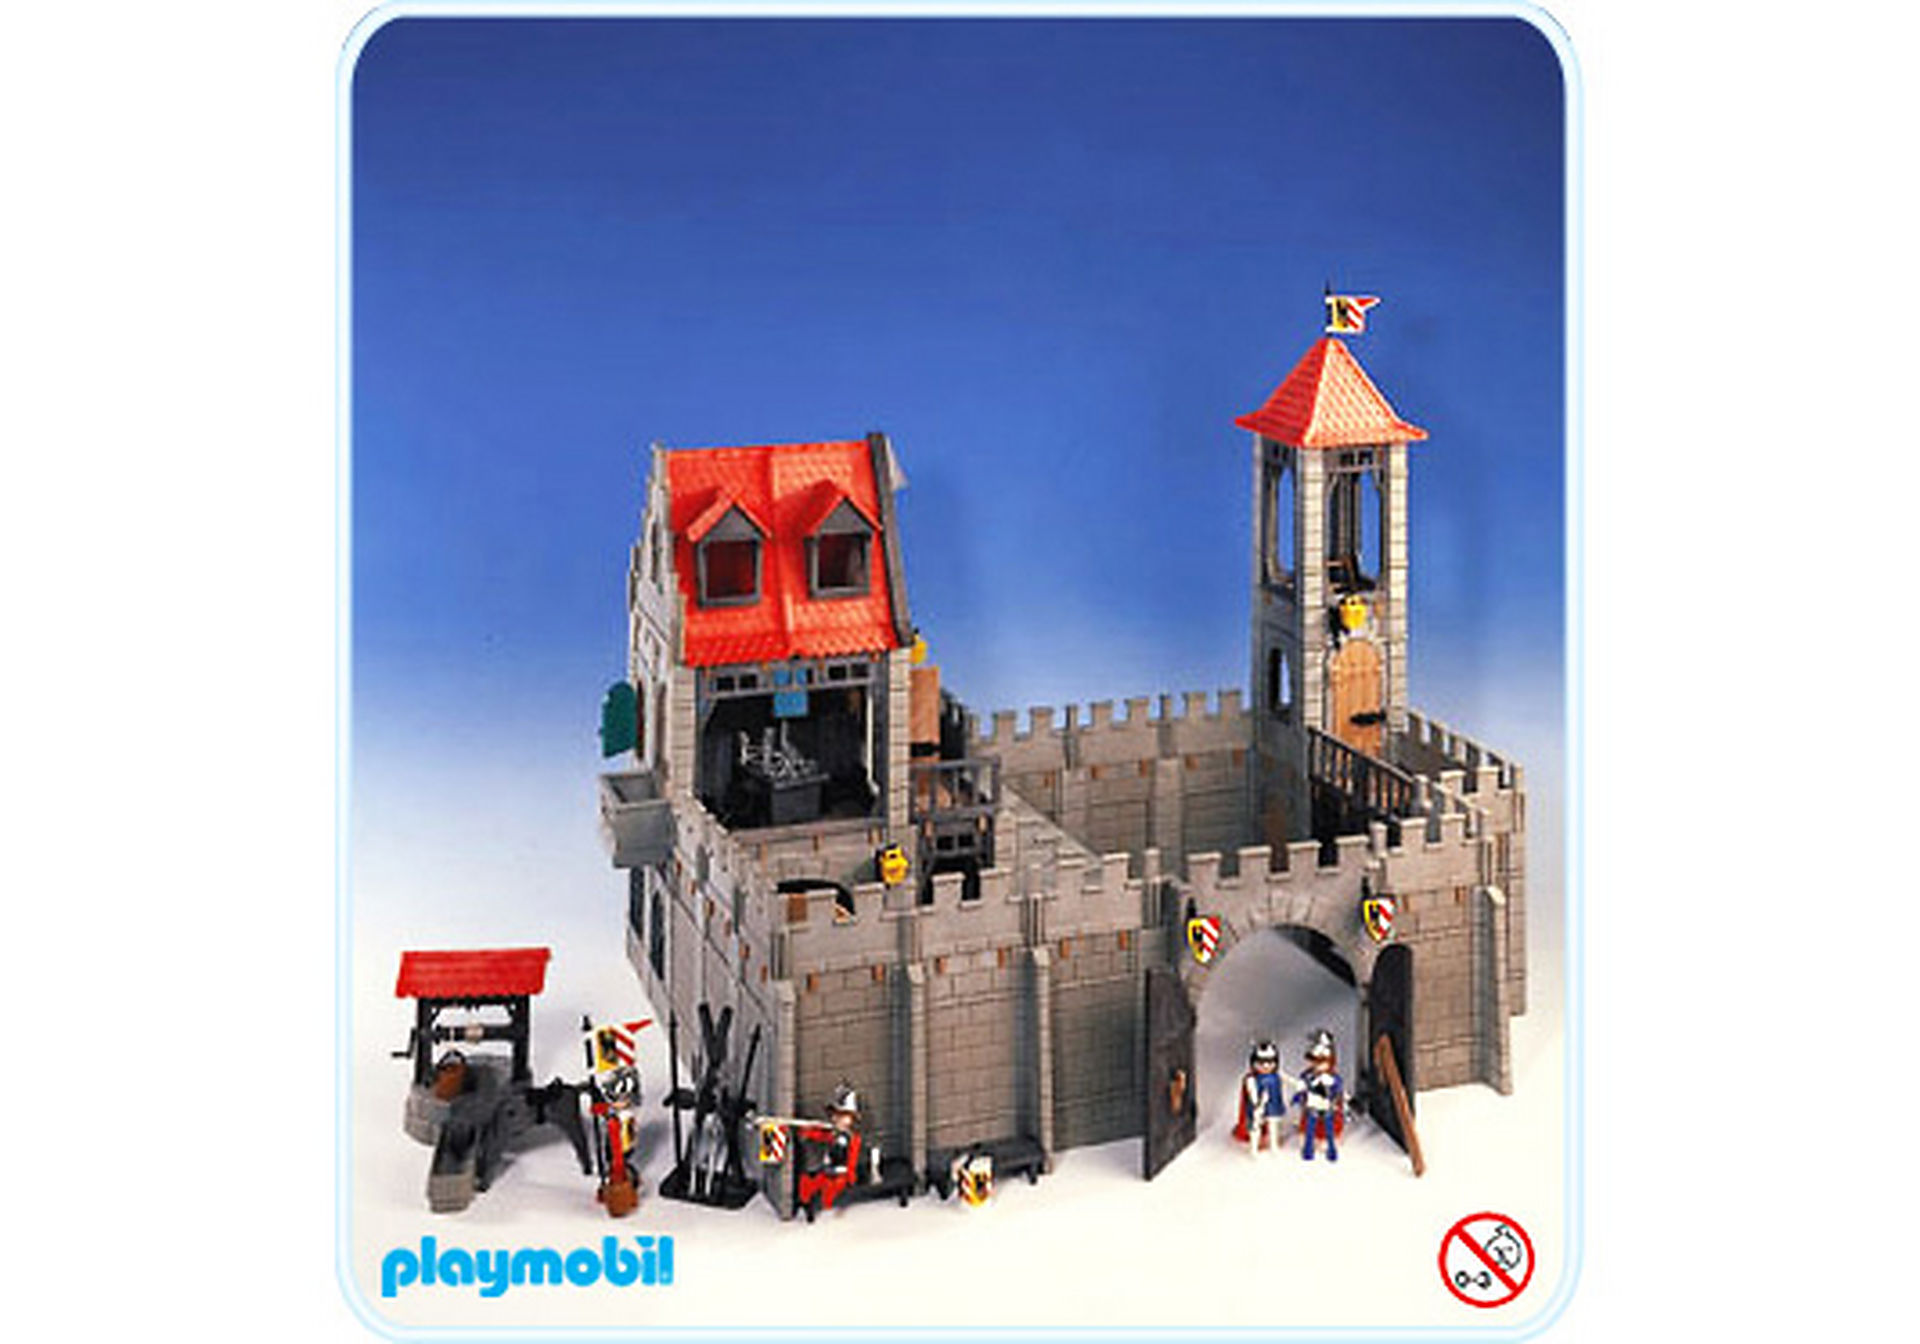 http://media.playmobil.com/i/playmobil/3450-A_product_detail/Burg